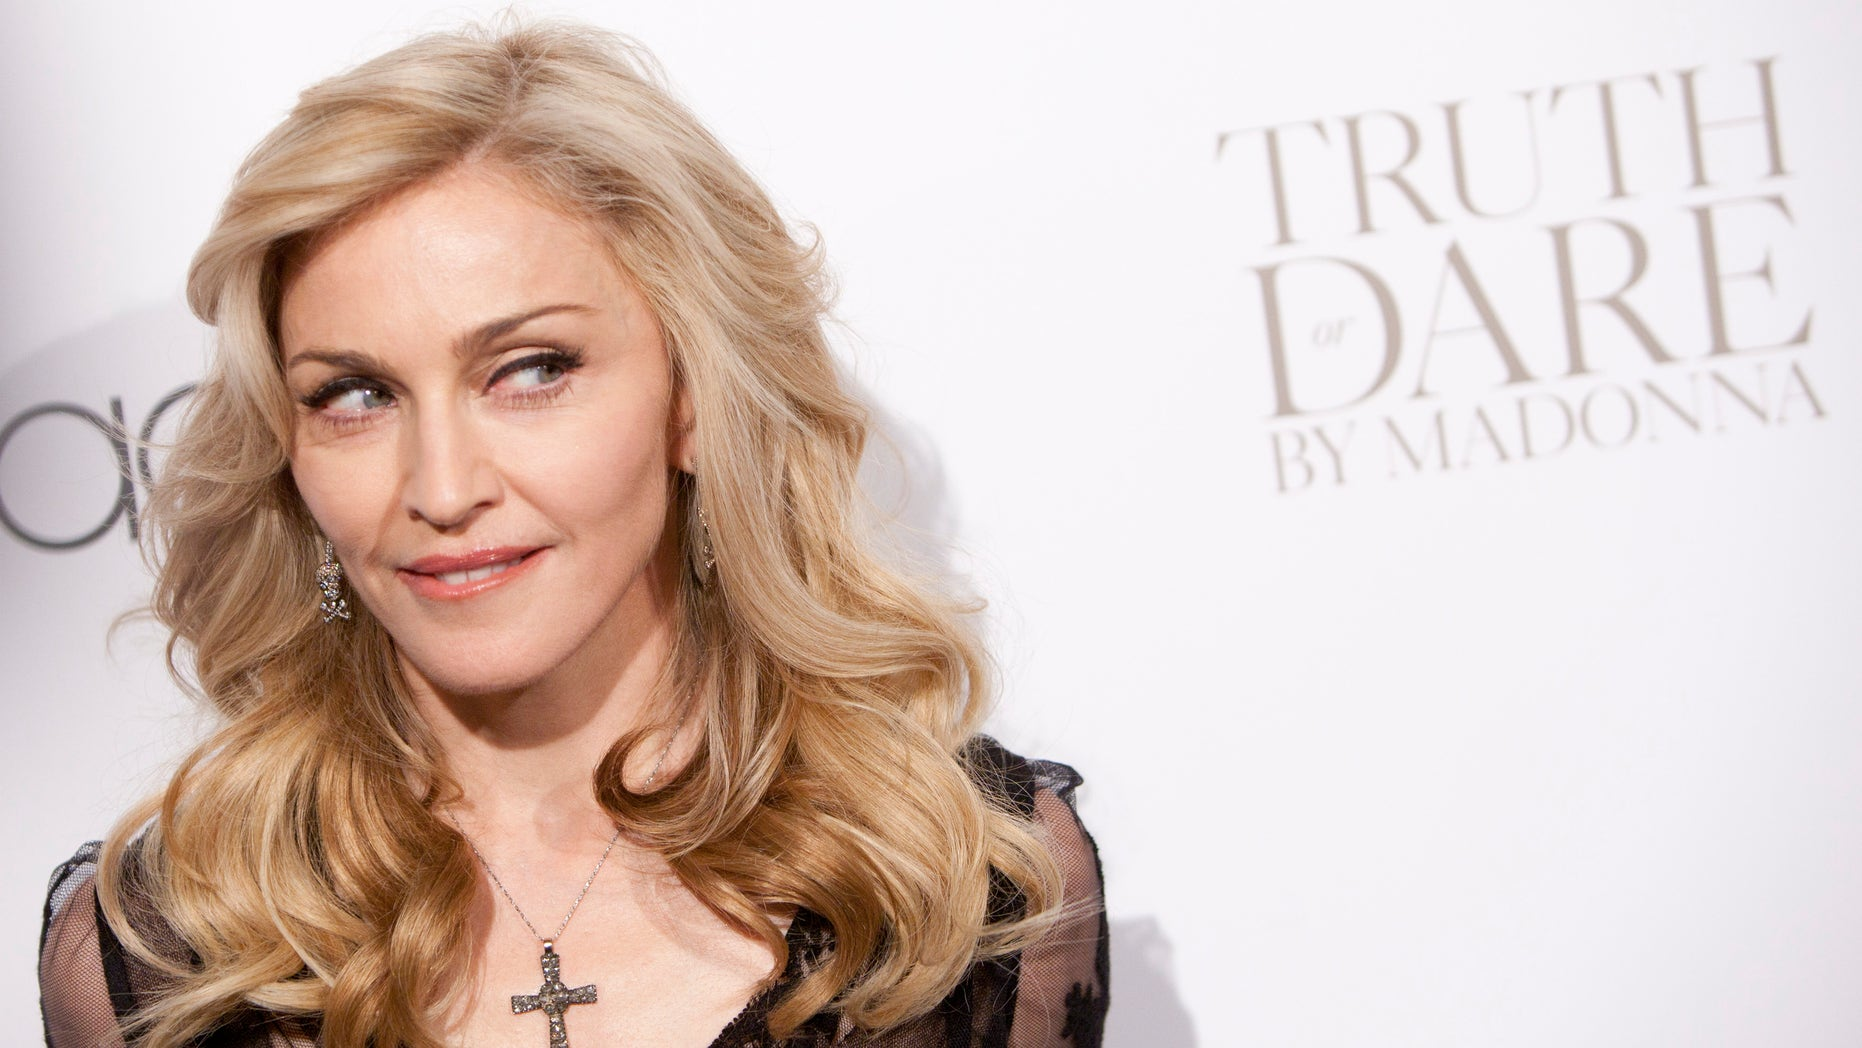 """April 12, 2012. Madonna arrives to the launch of her new fragrance, """"Truth or Dare"""" by Madonna at Macy's in New York."""